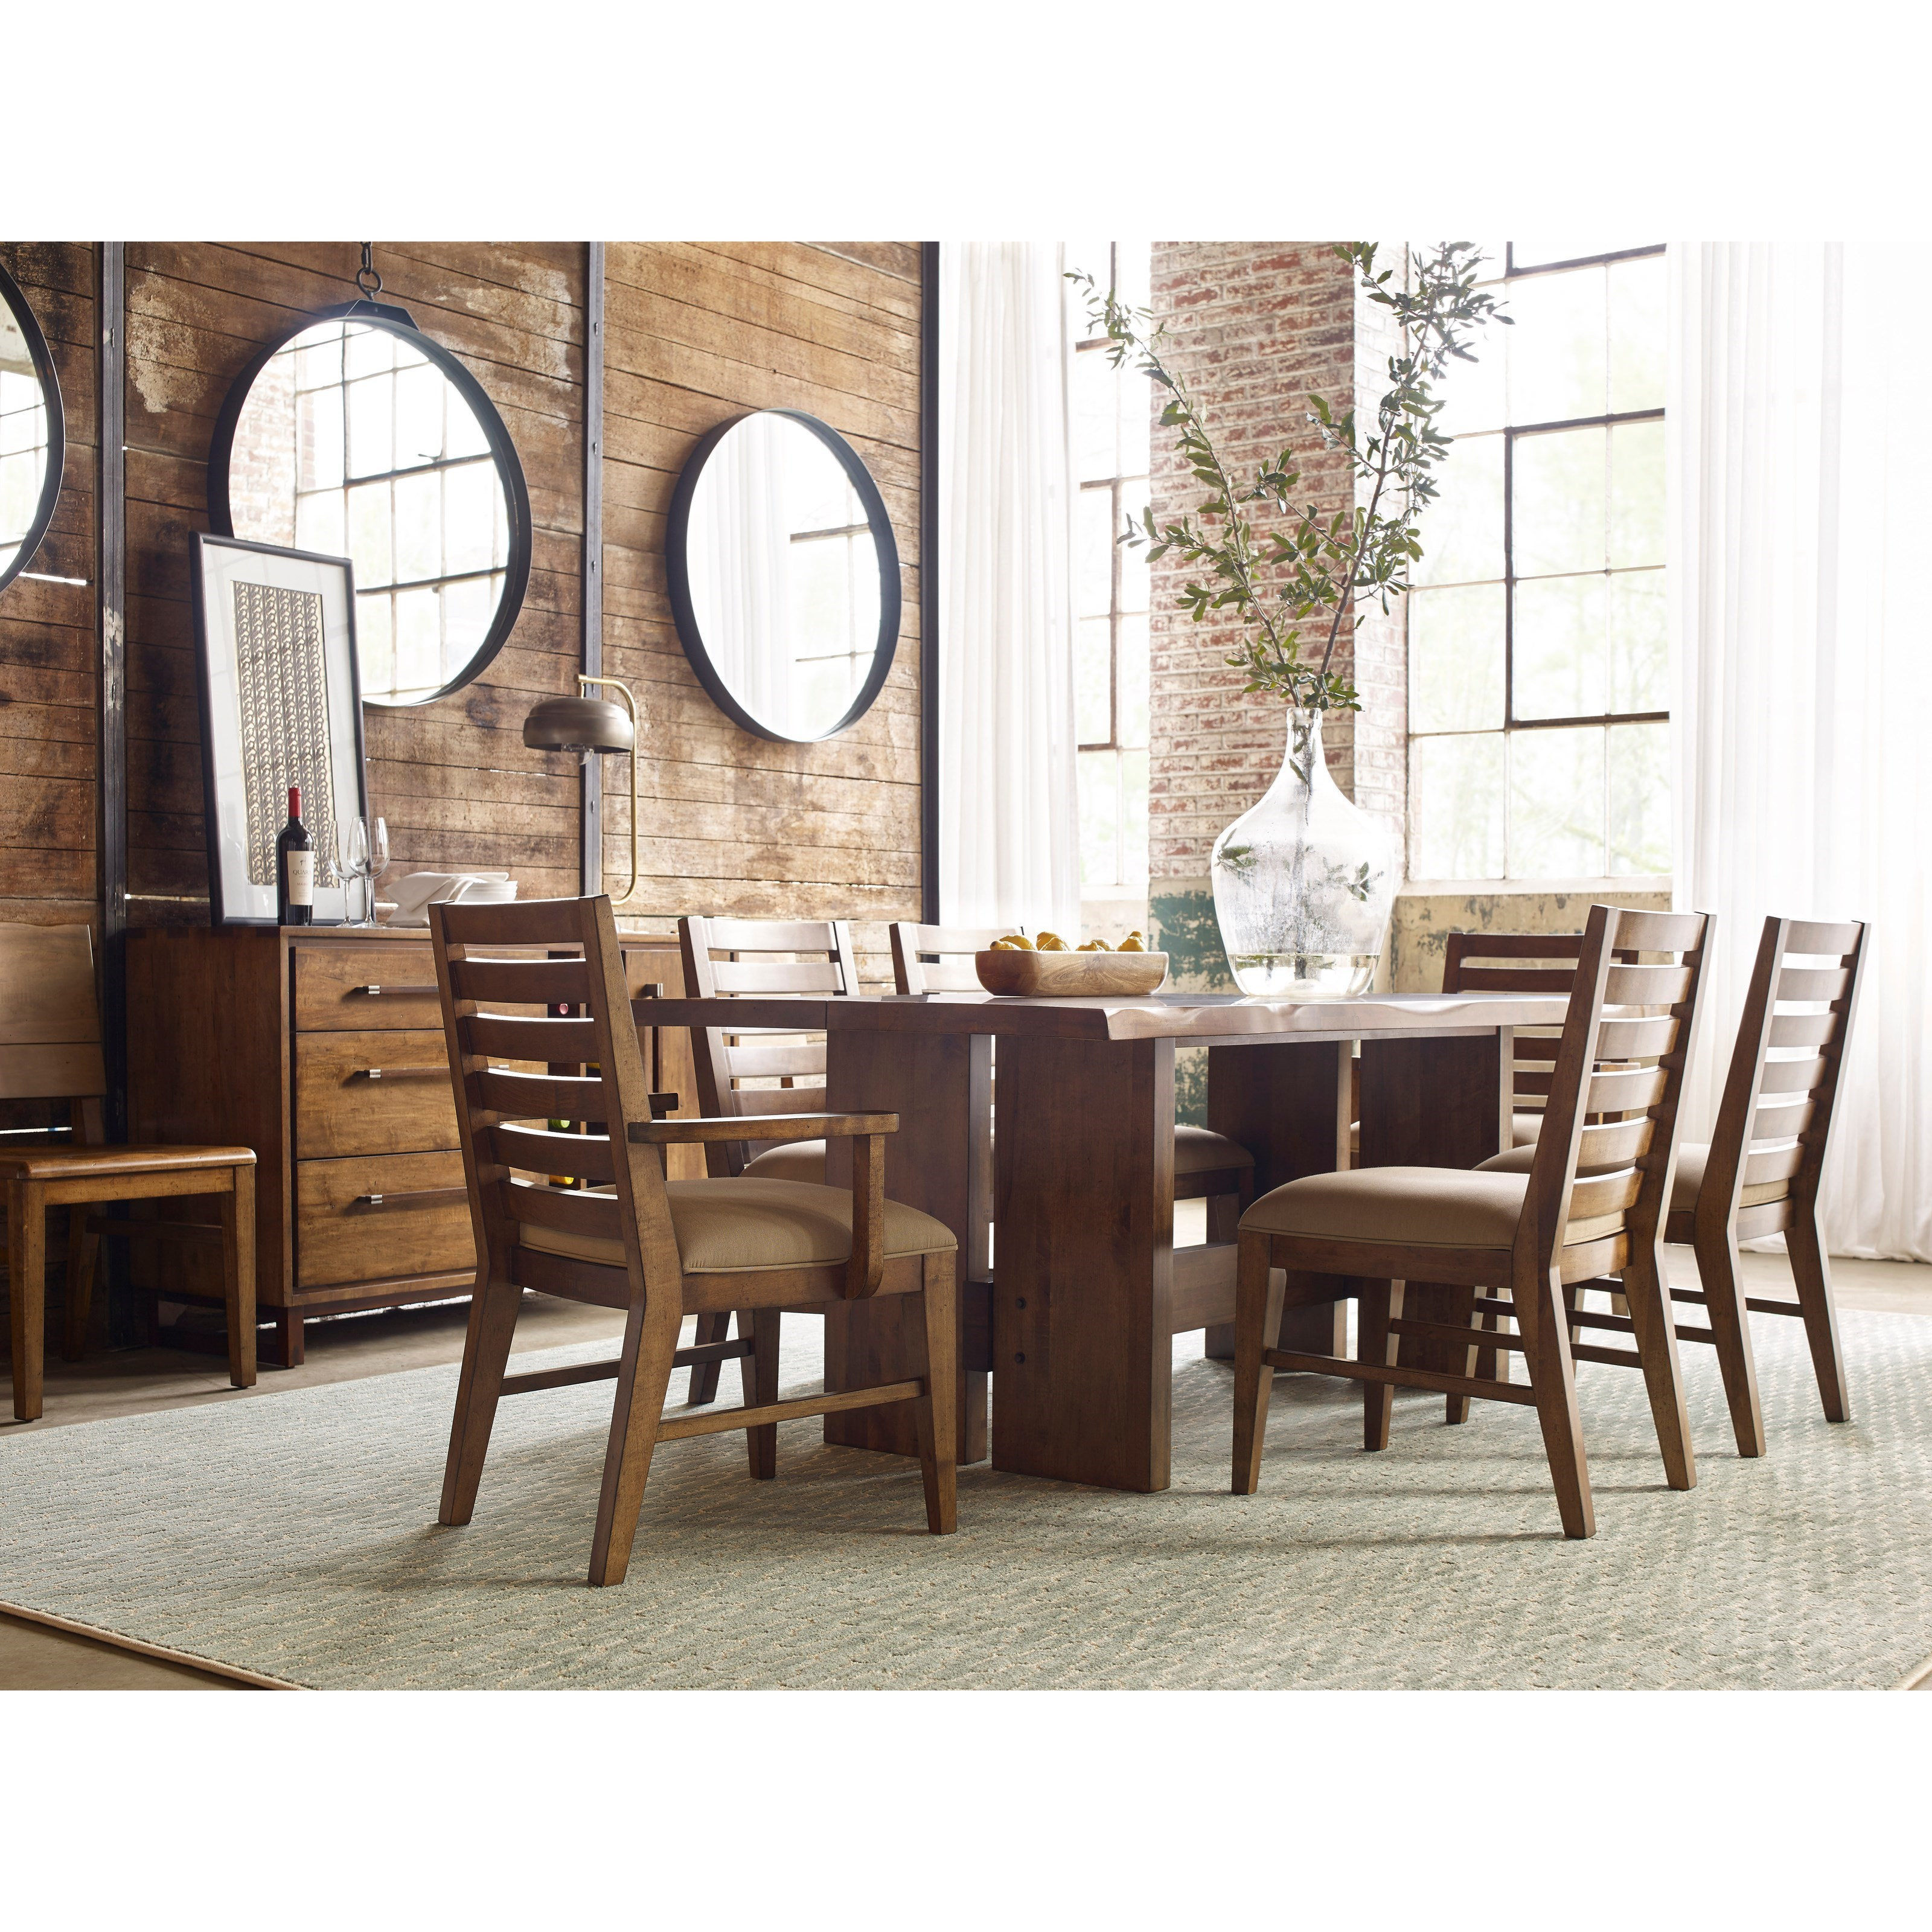 Delightful Cutler Live Edge Dining Table